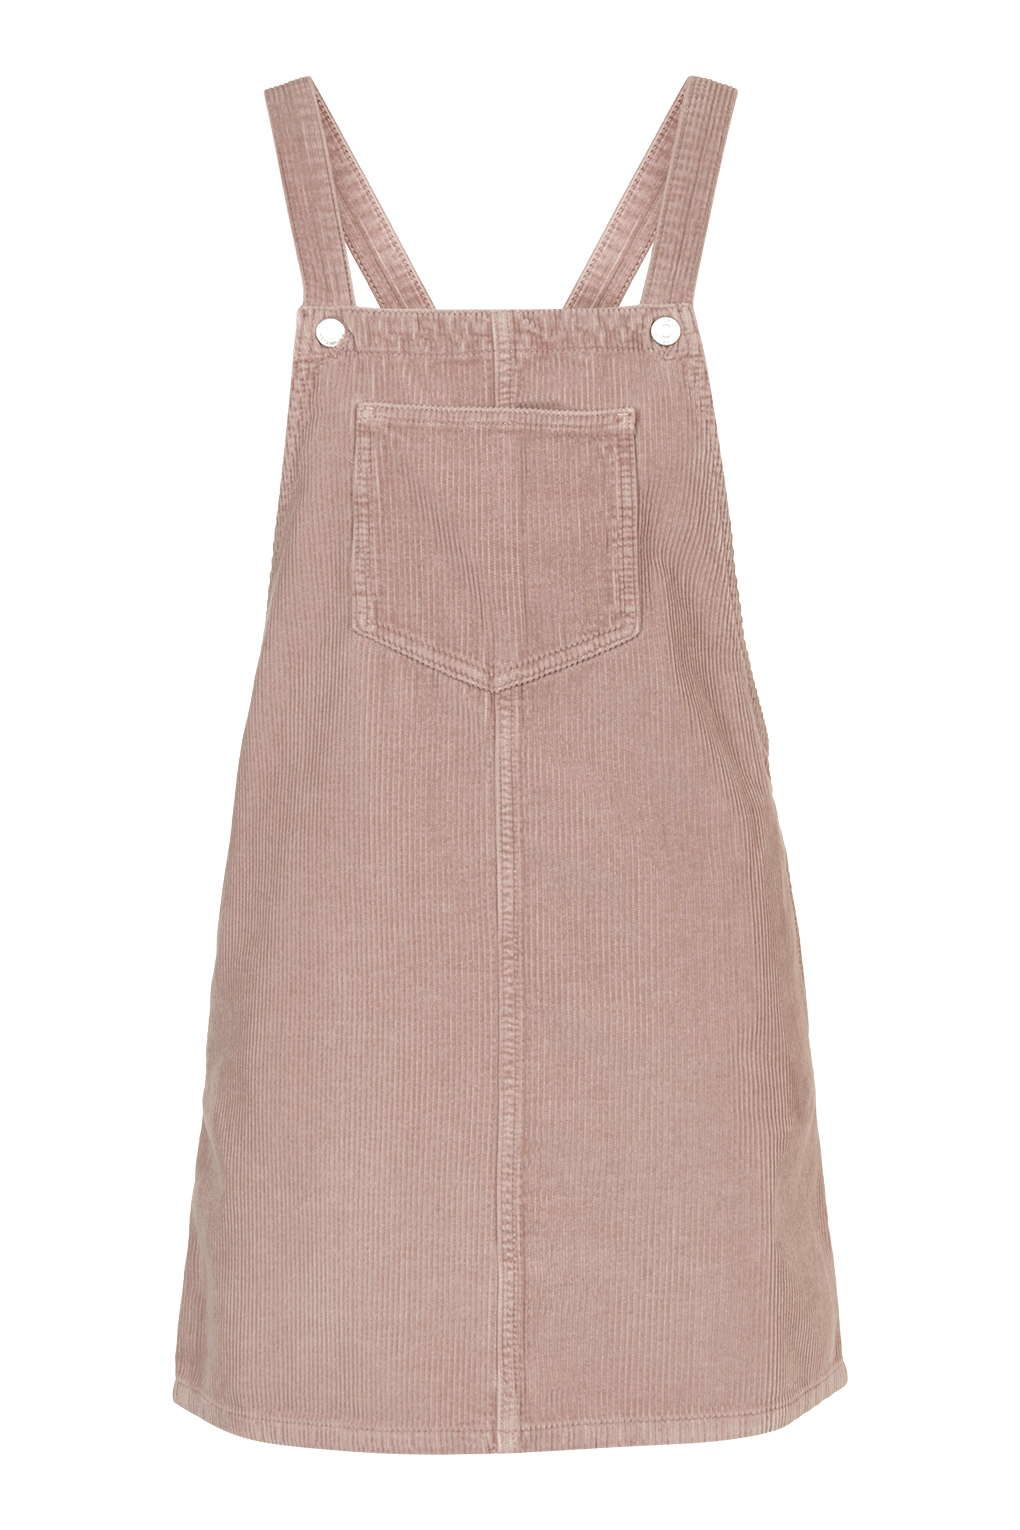 8e188e9dab49ac MOTO Pink Cord Pinafore Dress - Trending Now - New In - Topshop ...